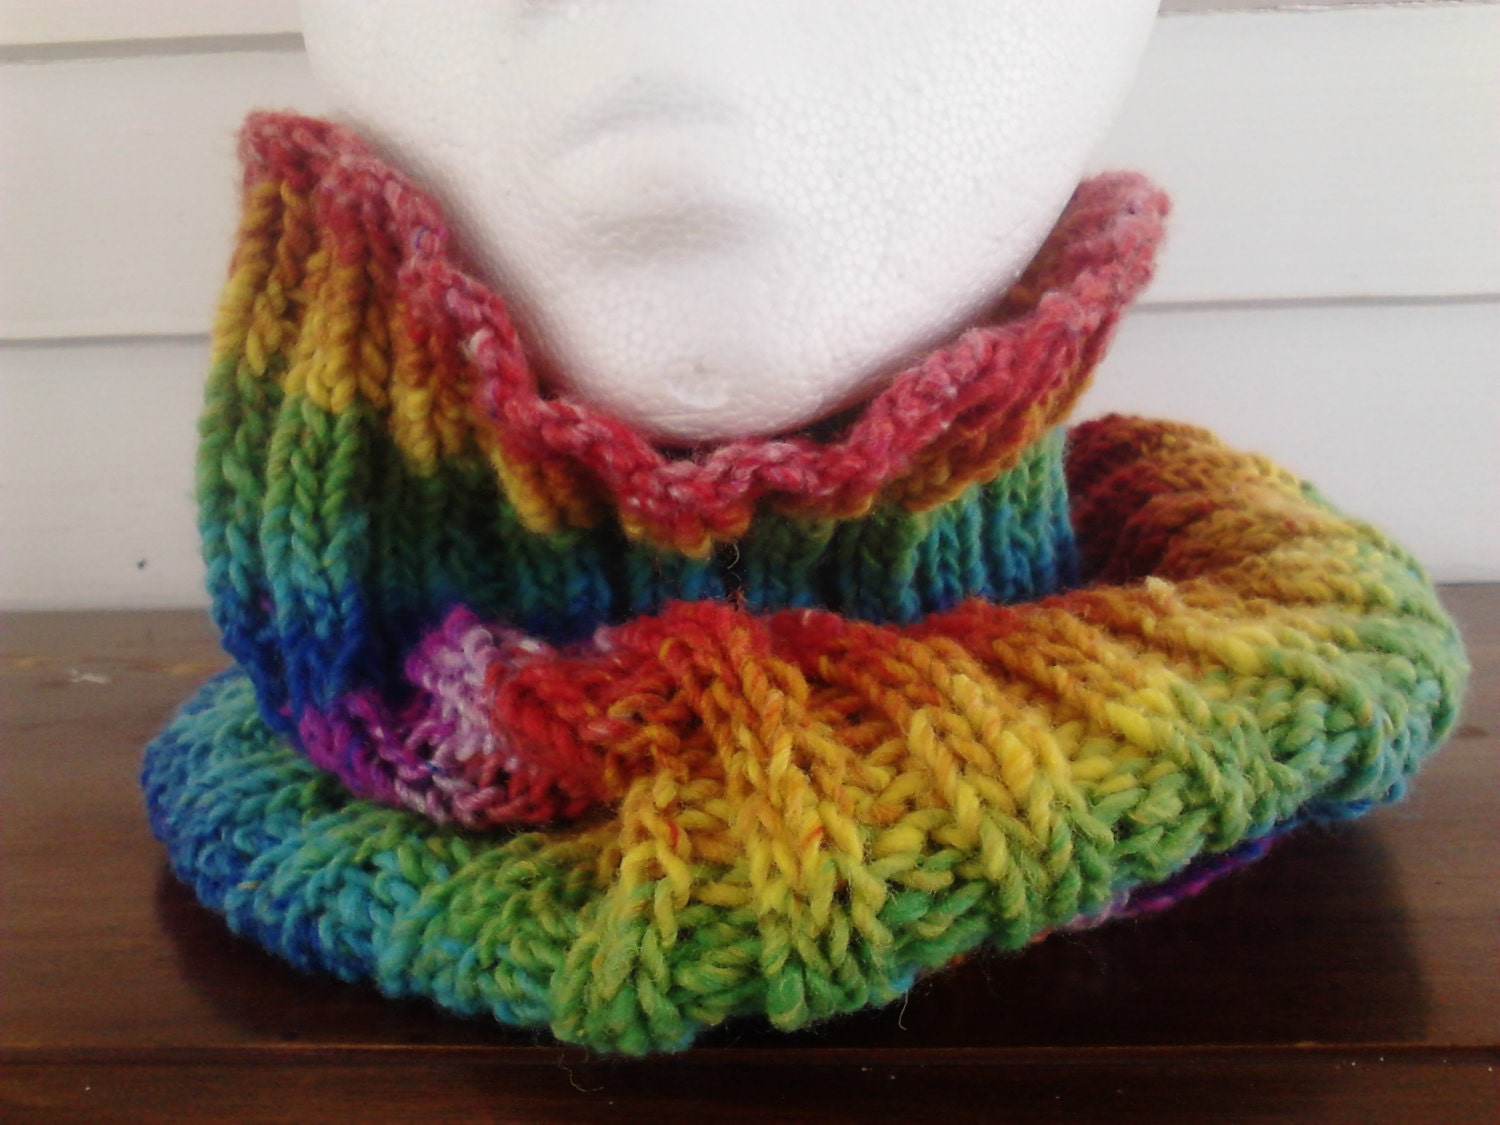 Rainbow Cowl Knitting Pattern : Cowl Rainbow Cowl Striped Cowl Neckwarmer Knit by LittleMoonCrafts